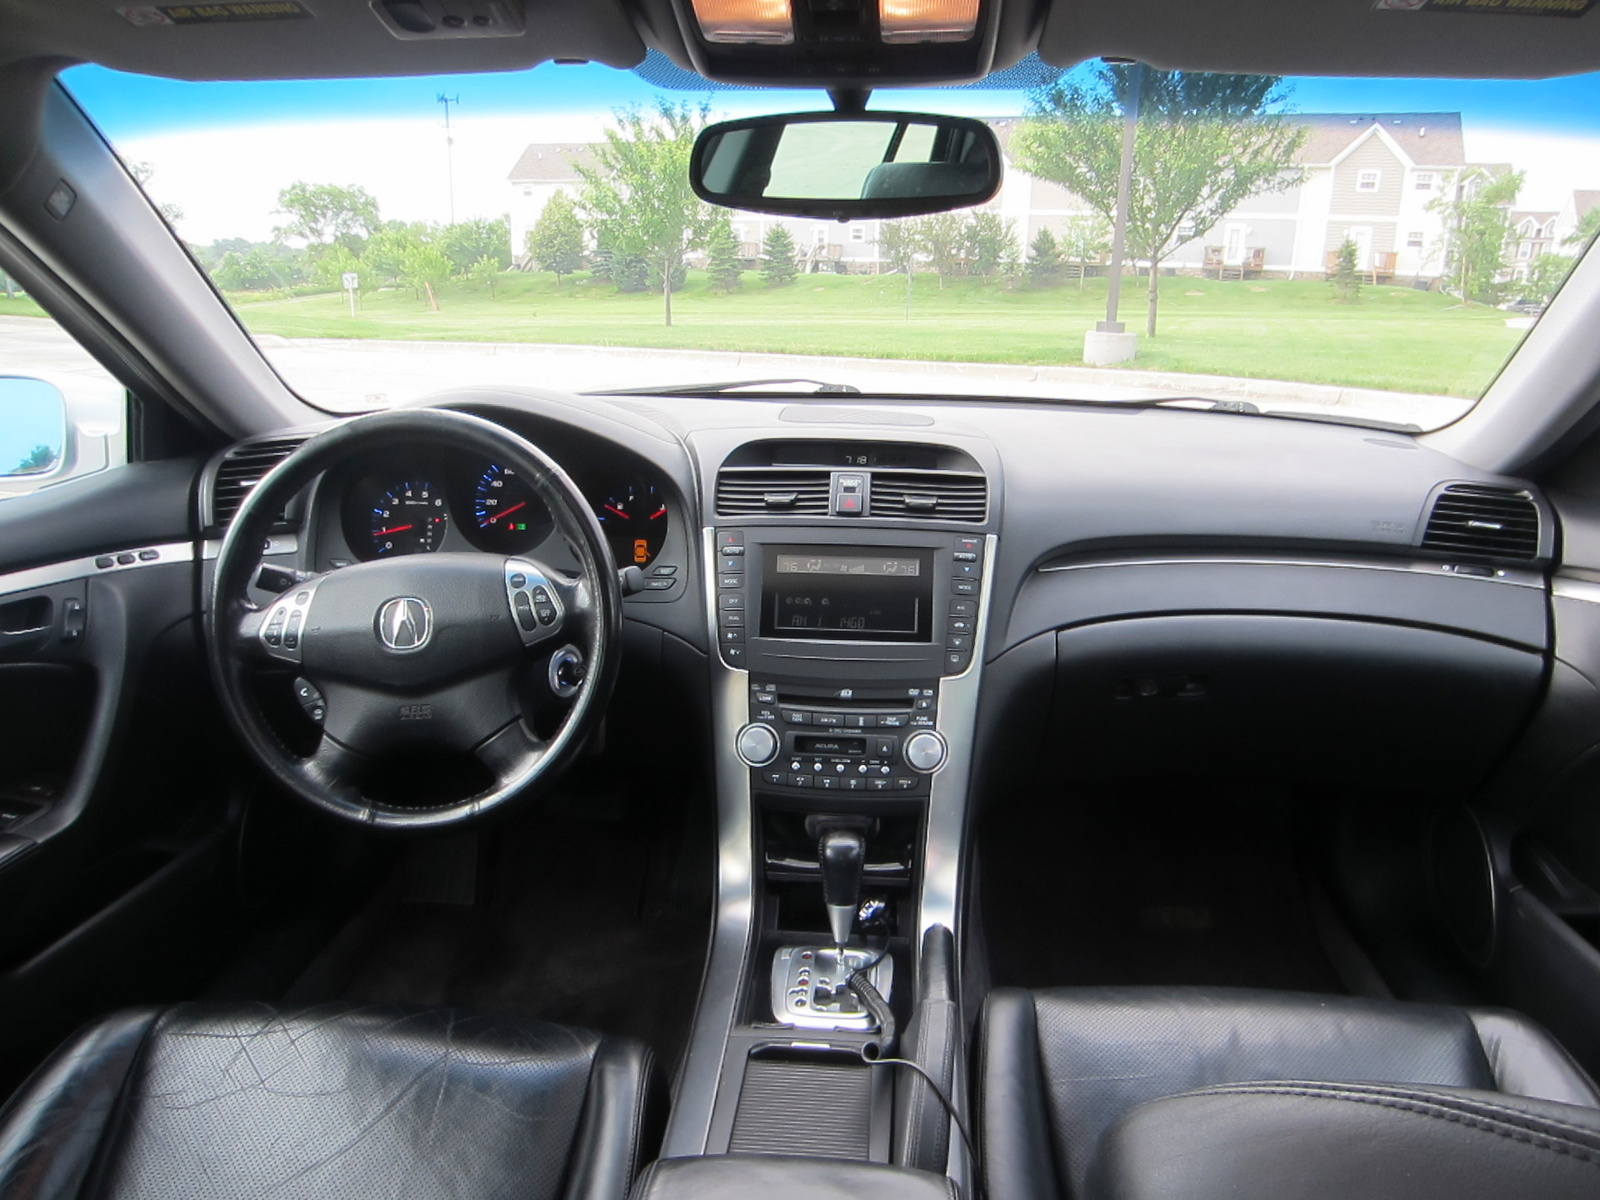 Wallpaper 2f also File 02 03 Acura TL besides 2007 also File 3rd generation Honda Inspire in addition 271311 Has Anyone Done Custom Interior W220. on 2002 acura tl